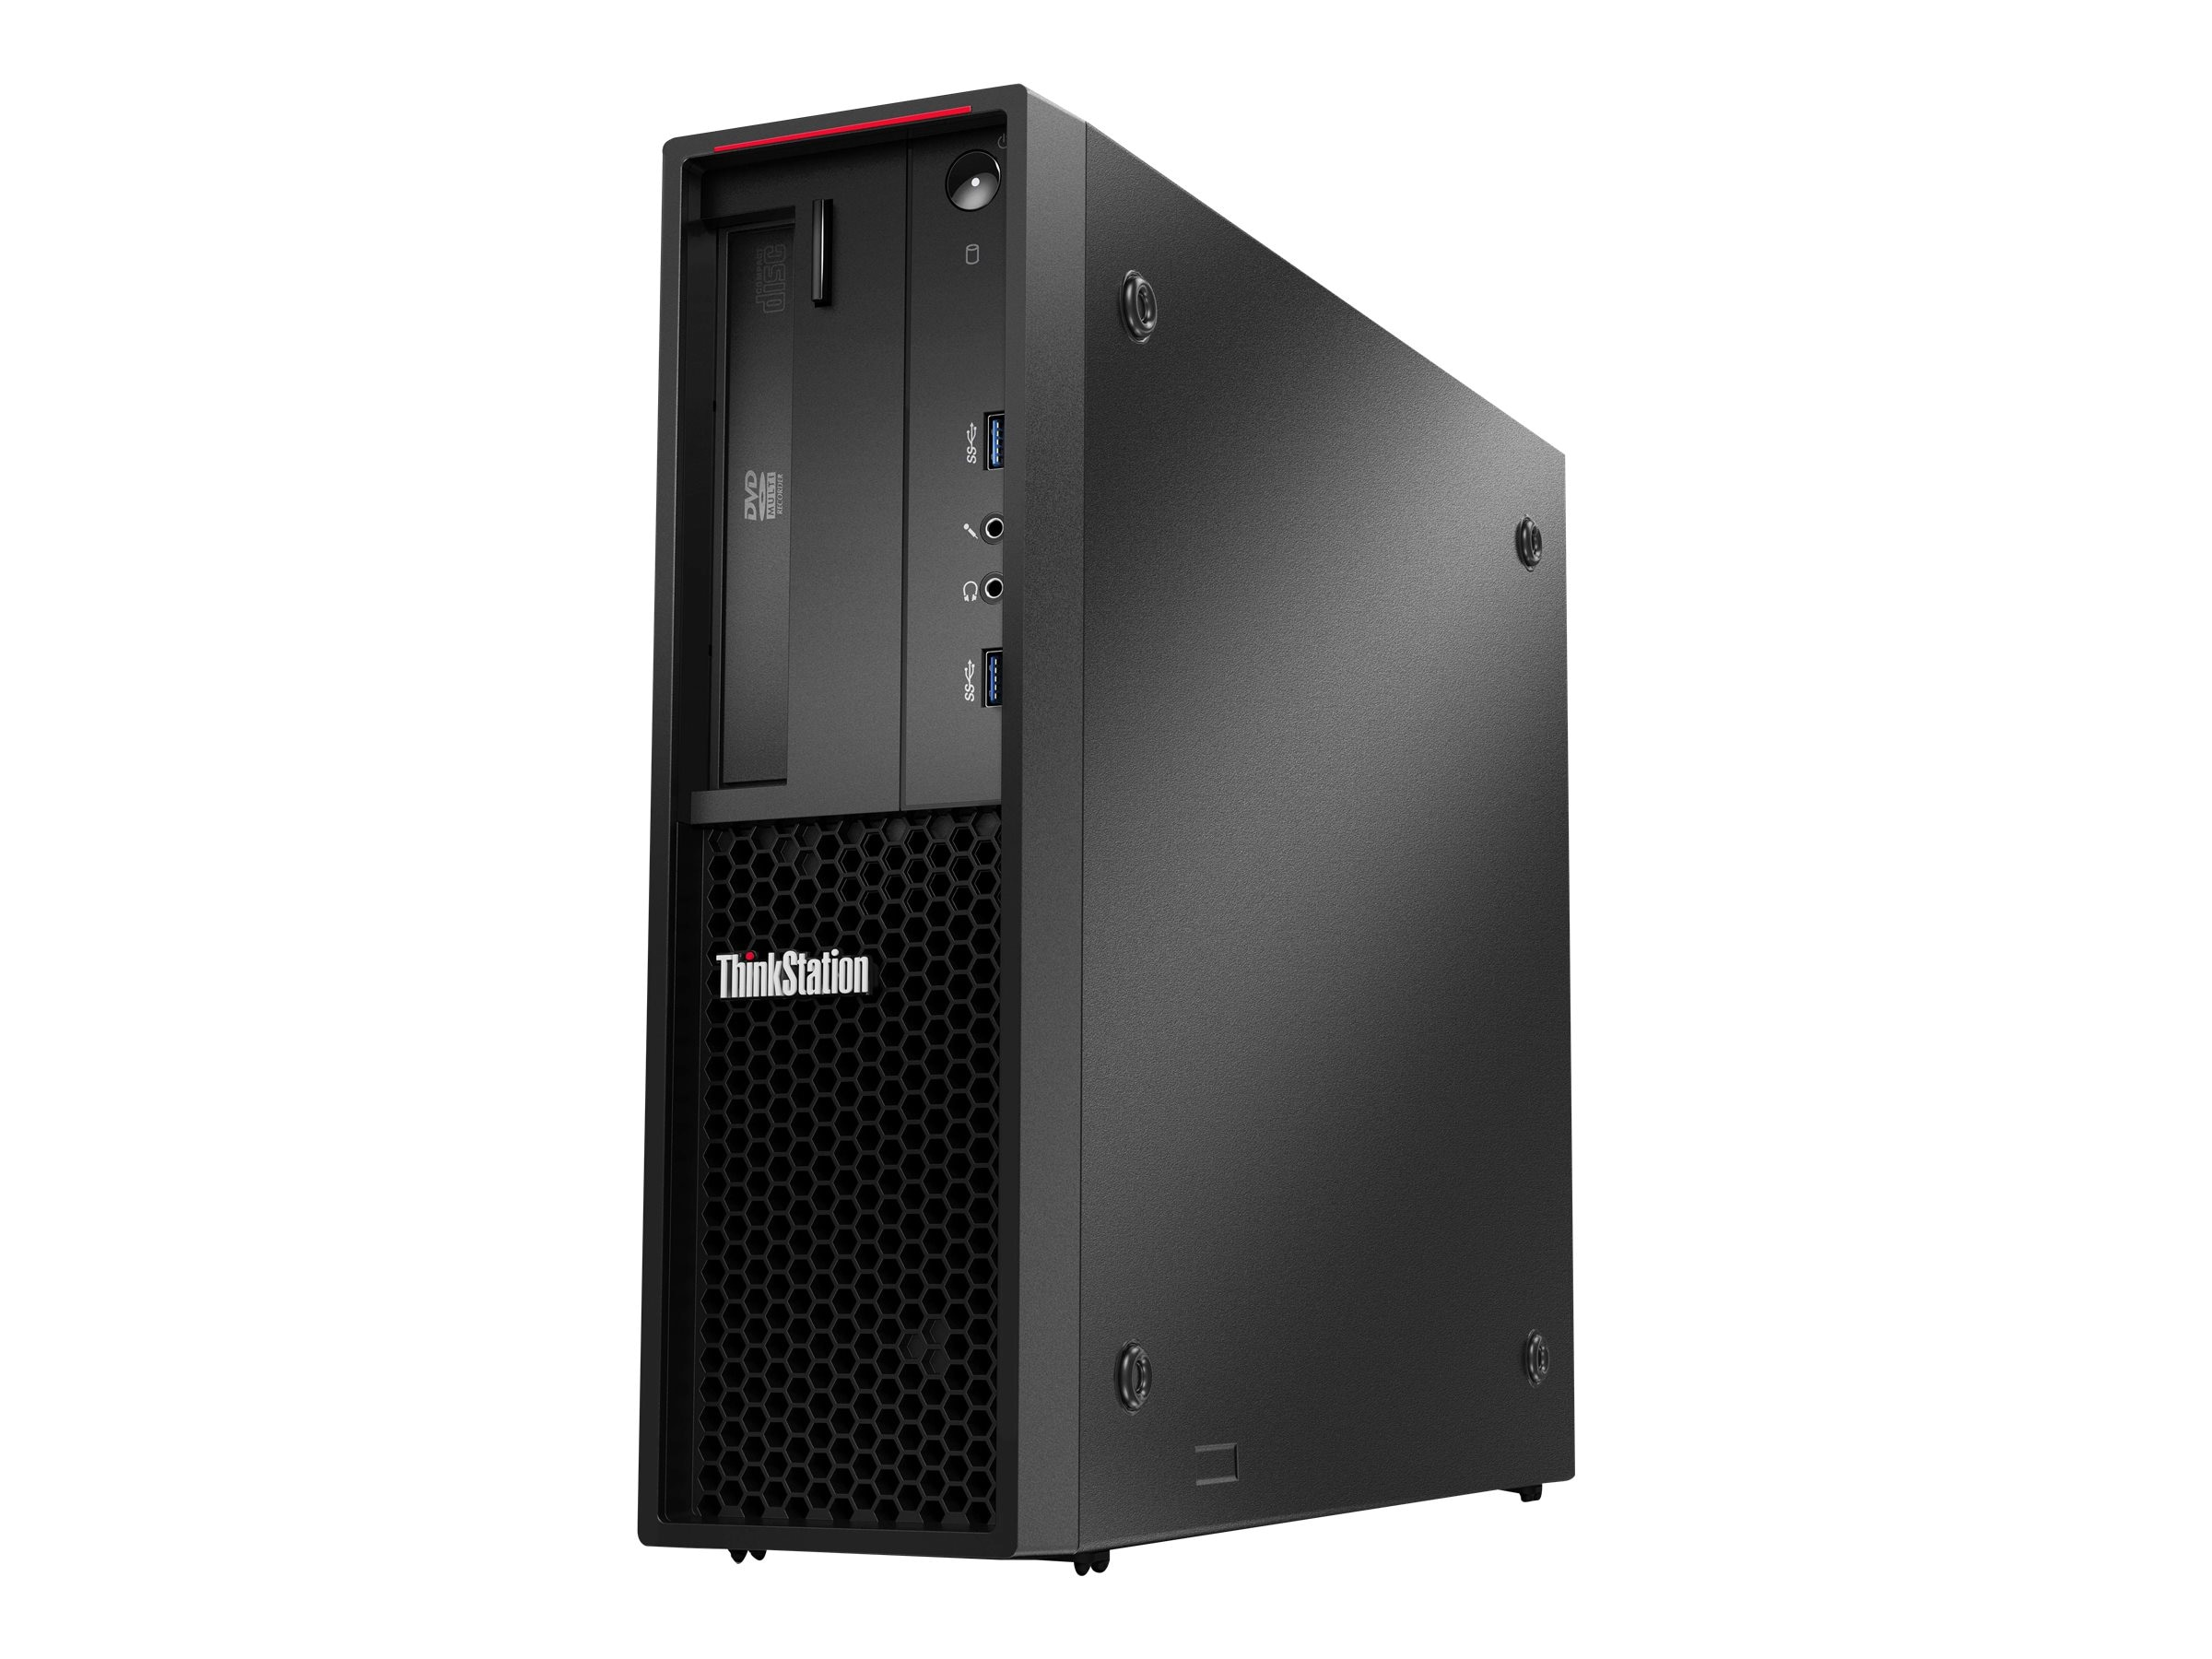 Lenovo TopSeller ThinkStation P310 3.5GHz Xeon Microsoft Windows 7 Professional 64-bit Edition   Windows 10 Pro, 30AV000DUS